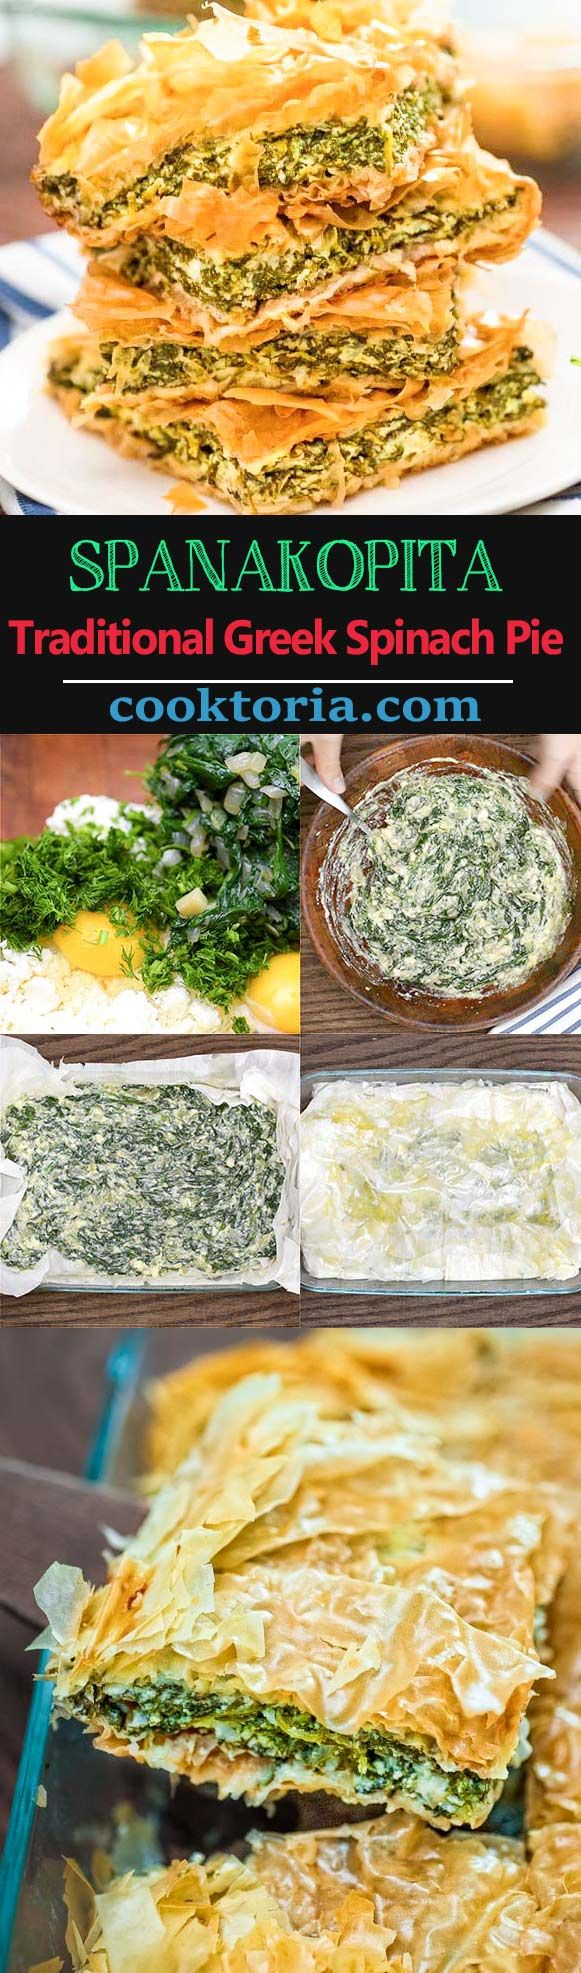 Layers of flaky phyllo dough paired with smooth and flavorful spinach-feta filling, make thisSpanakopita (Traditional Greek Spinach Pie) a great lunch or light dinner. ❤ COOKTORIA.COM